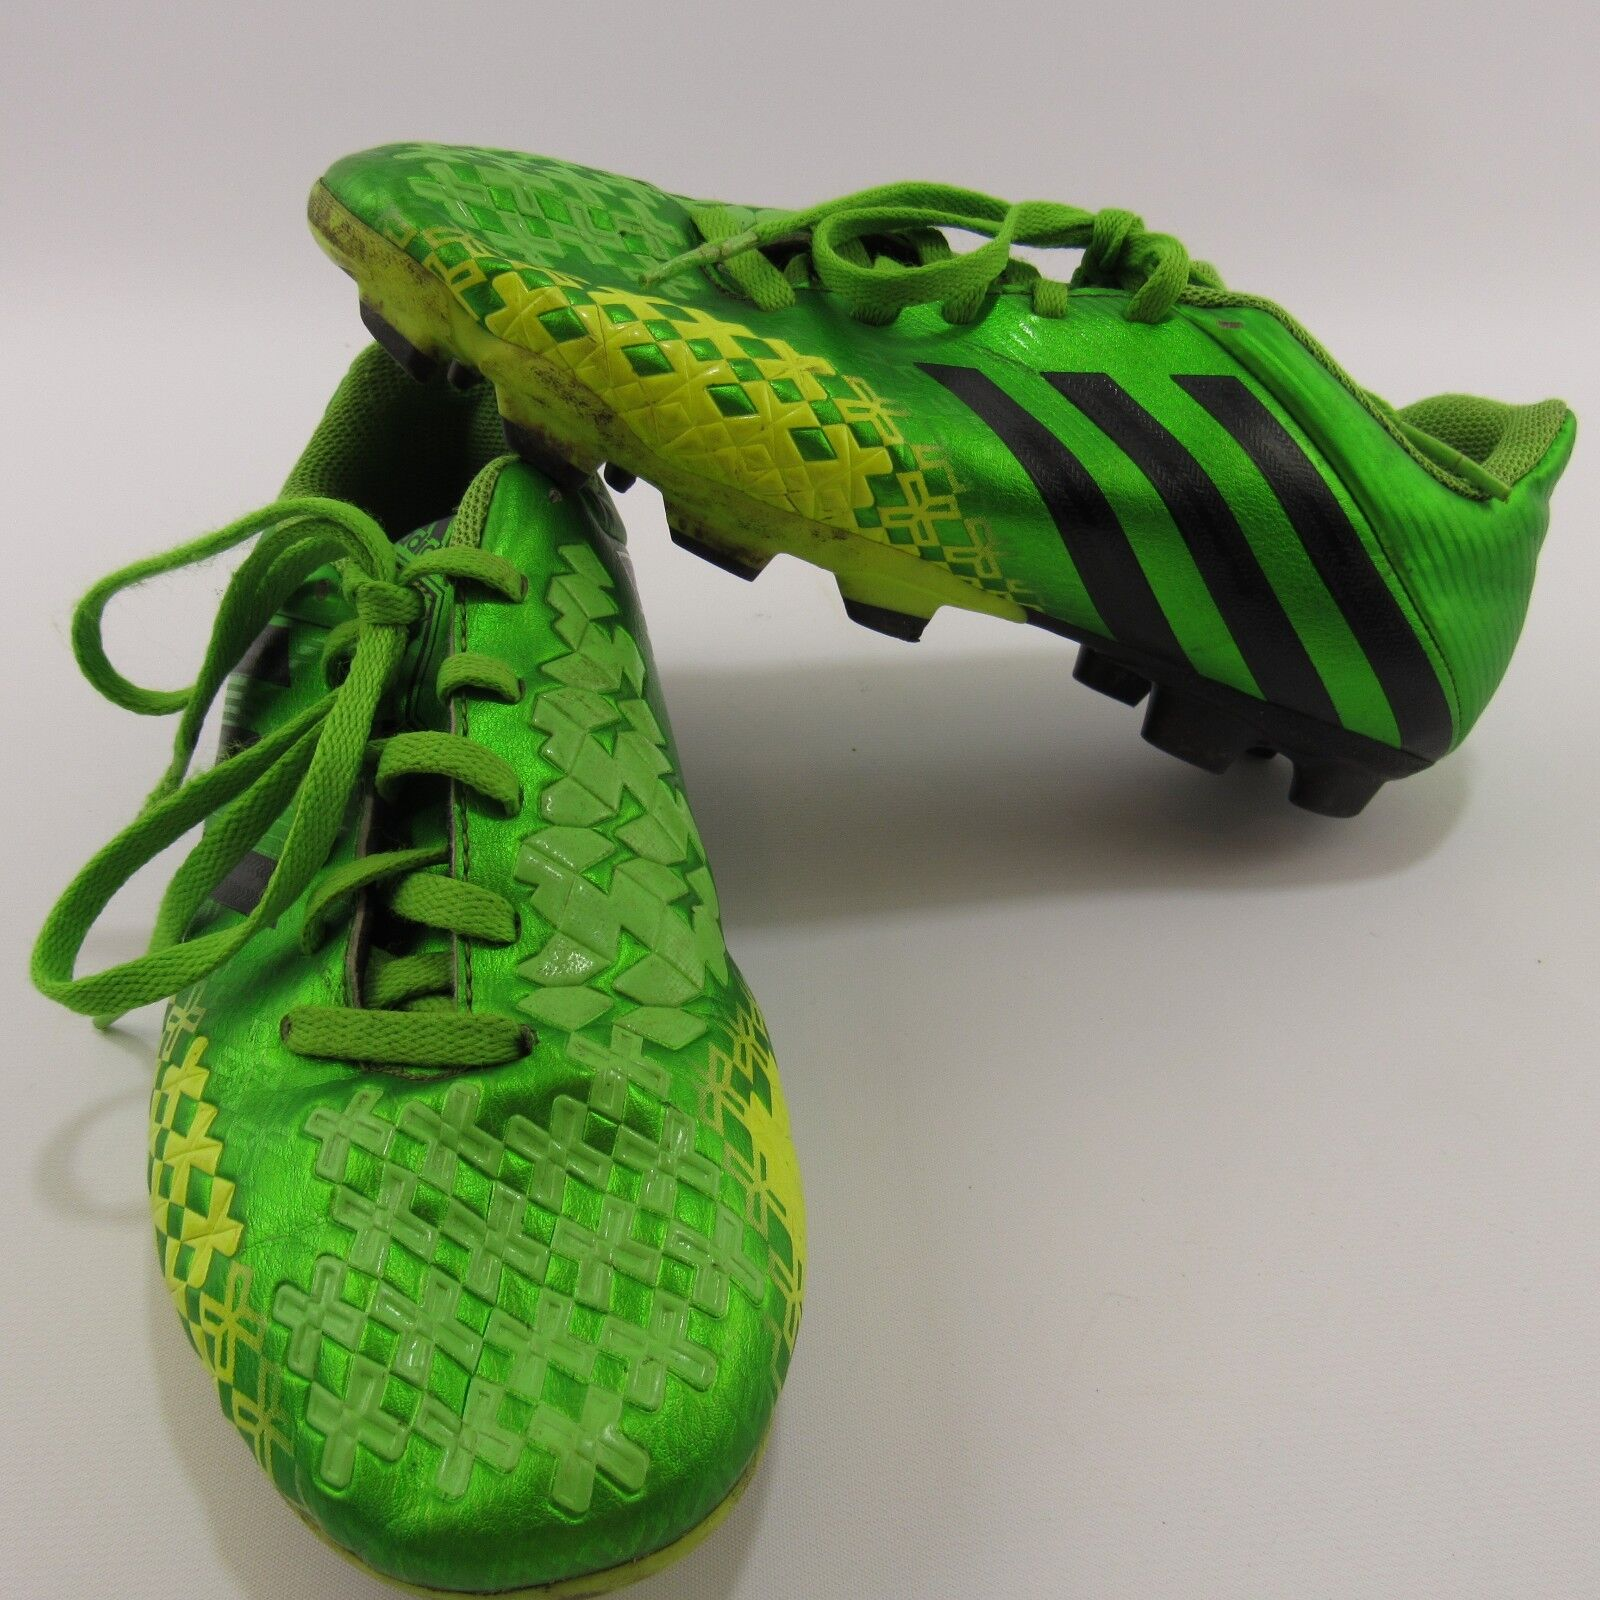 Adidas Predito Lz Trx FG Soccer Cleats Size 5 Athletic Outdoor Shoes Green